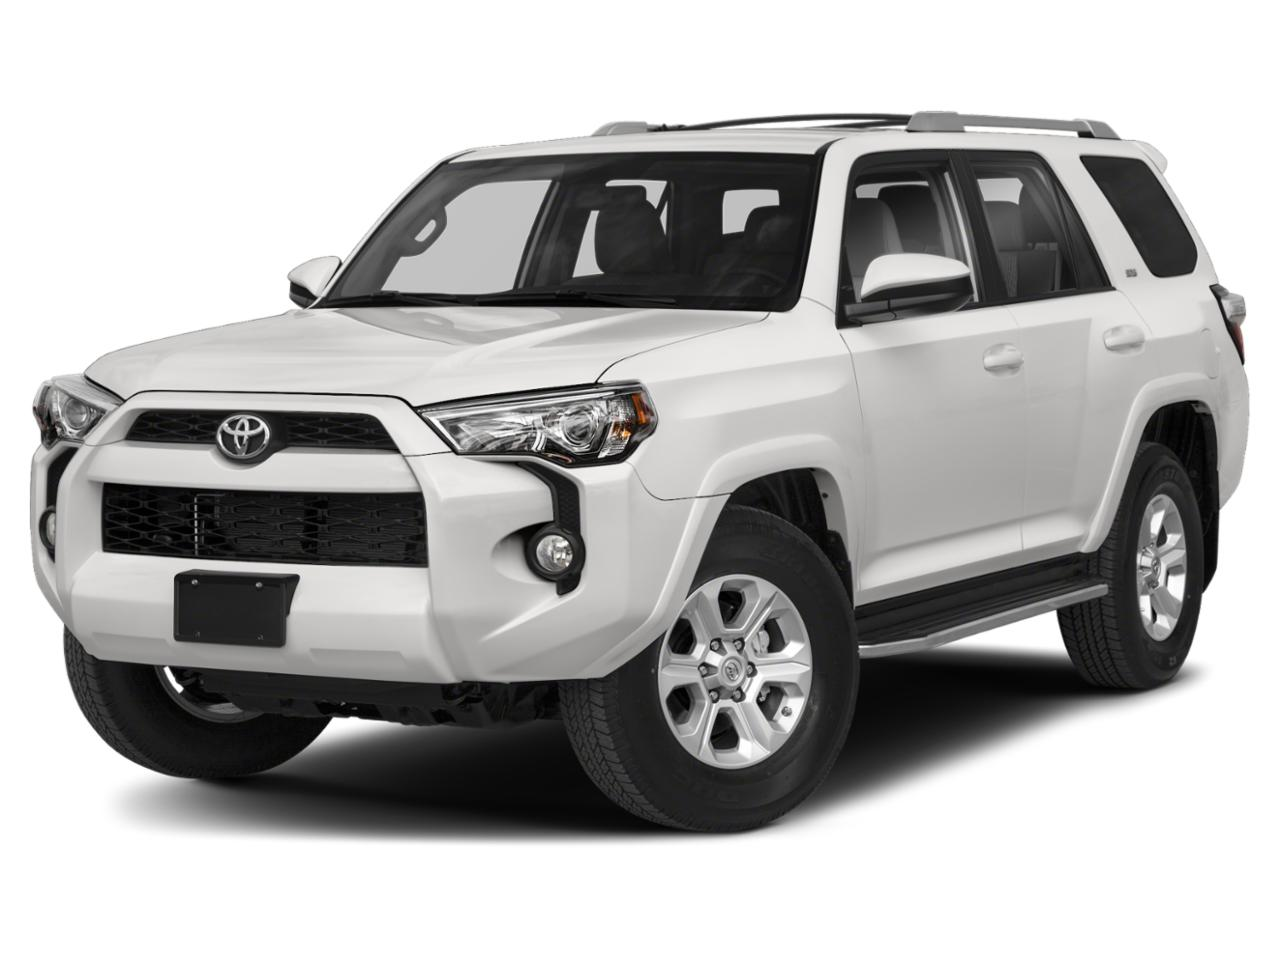 2018 Toyota 4Runner Vehicle Photo in Greensboro, NC 27405